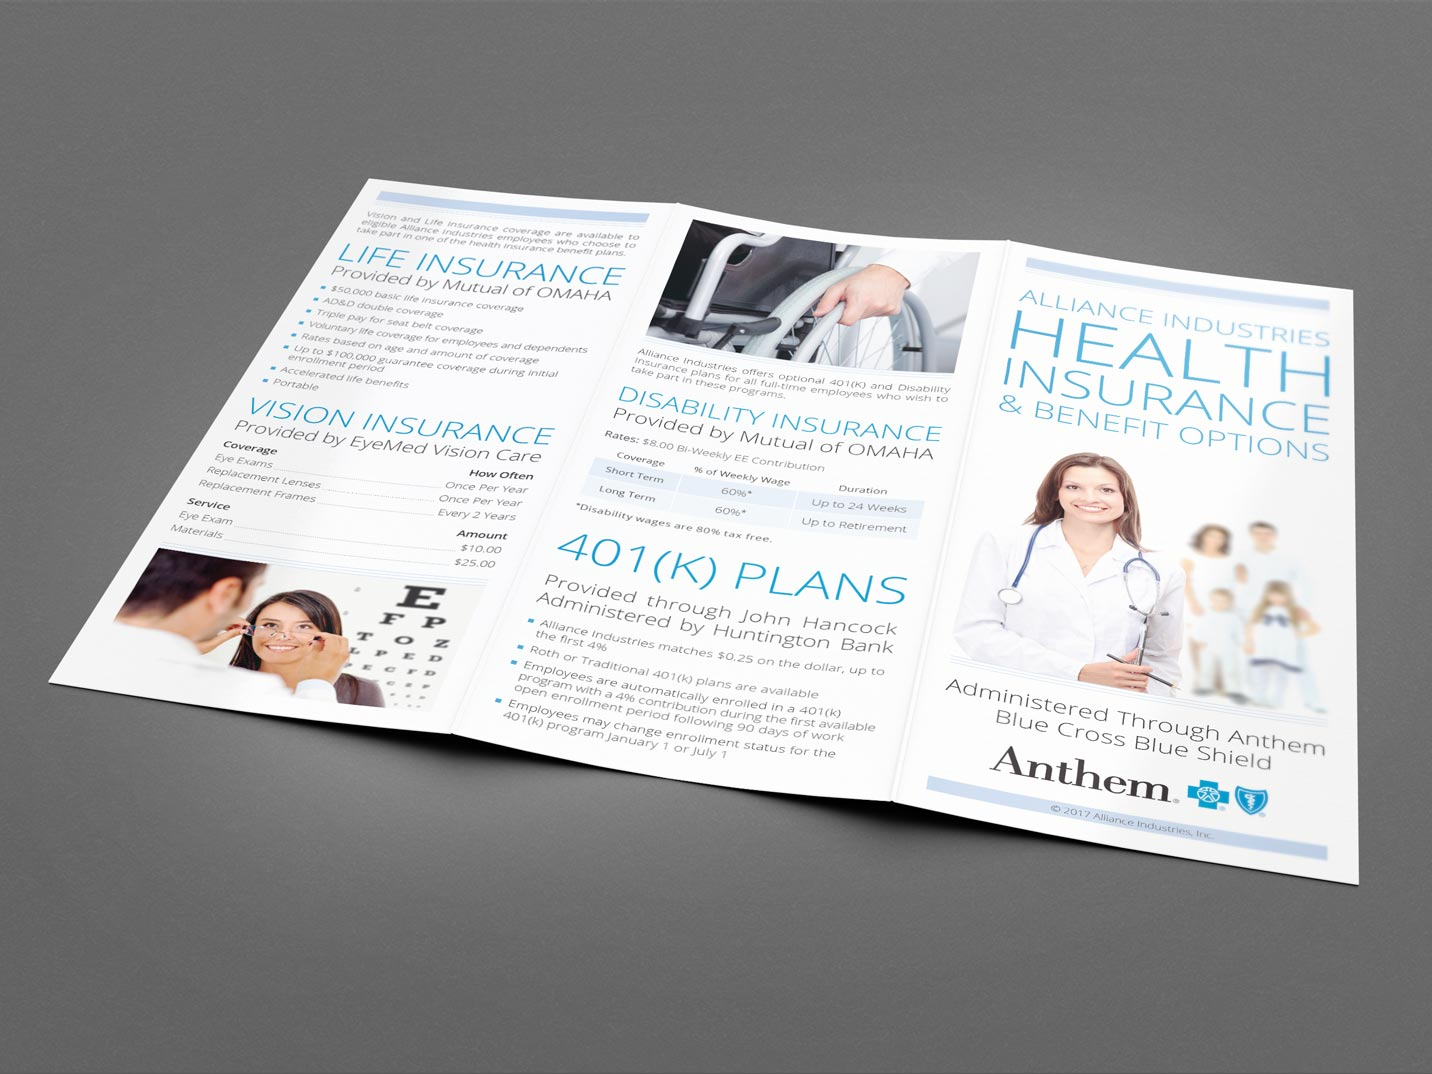 Alliance Industries Benefits Brochure